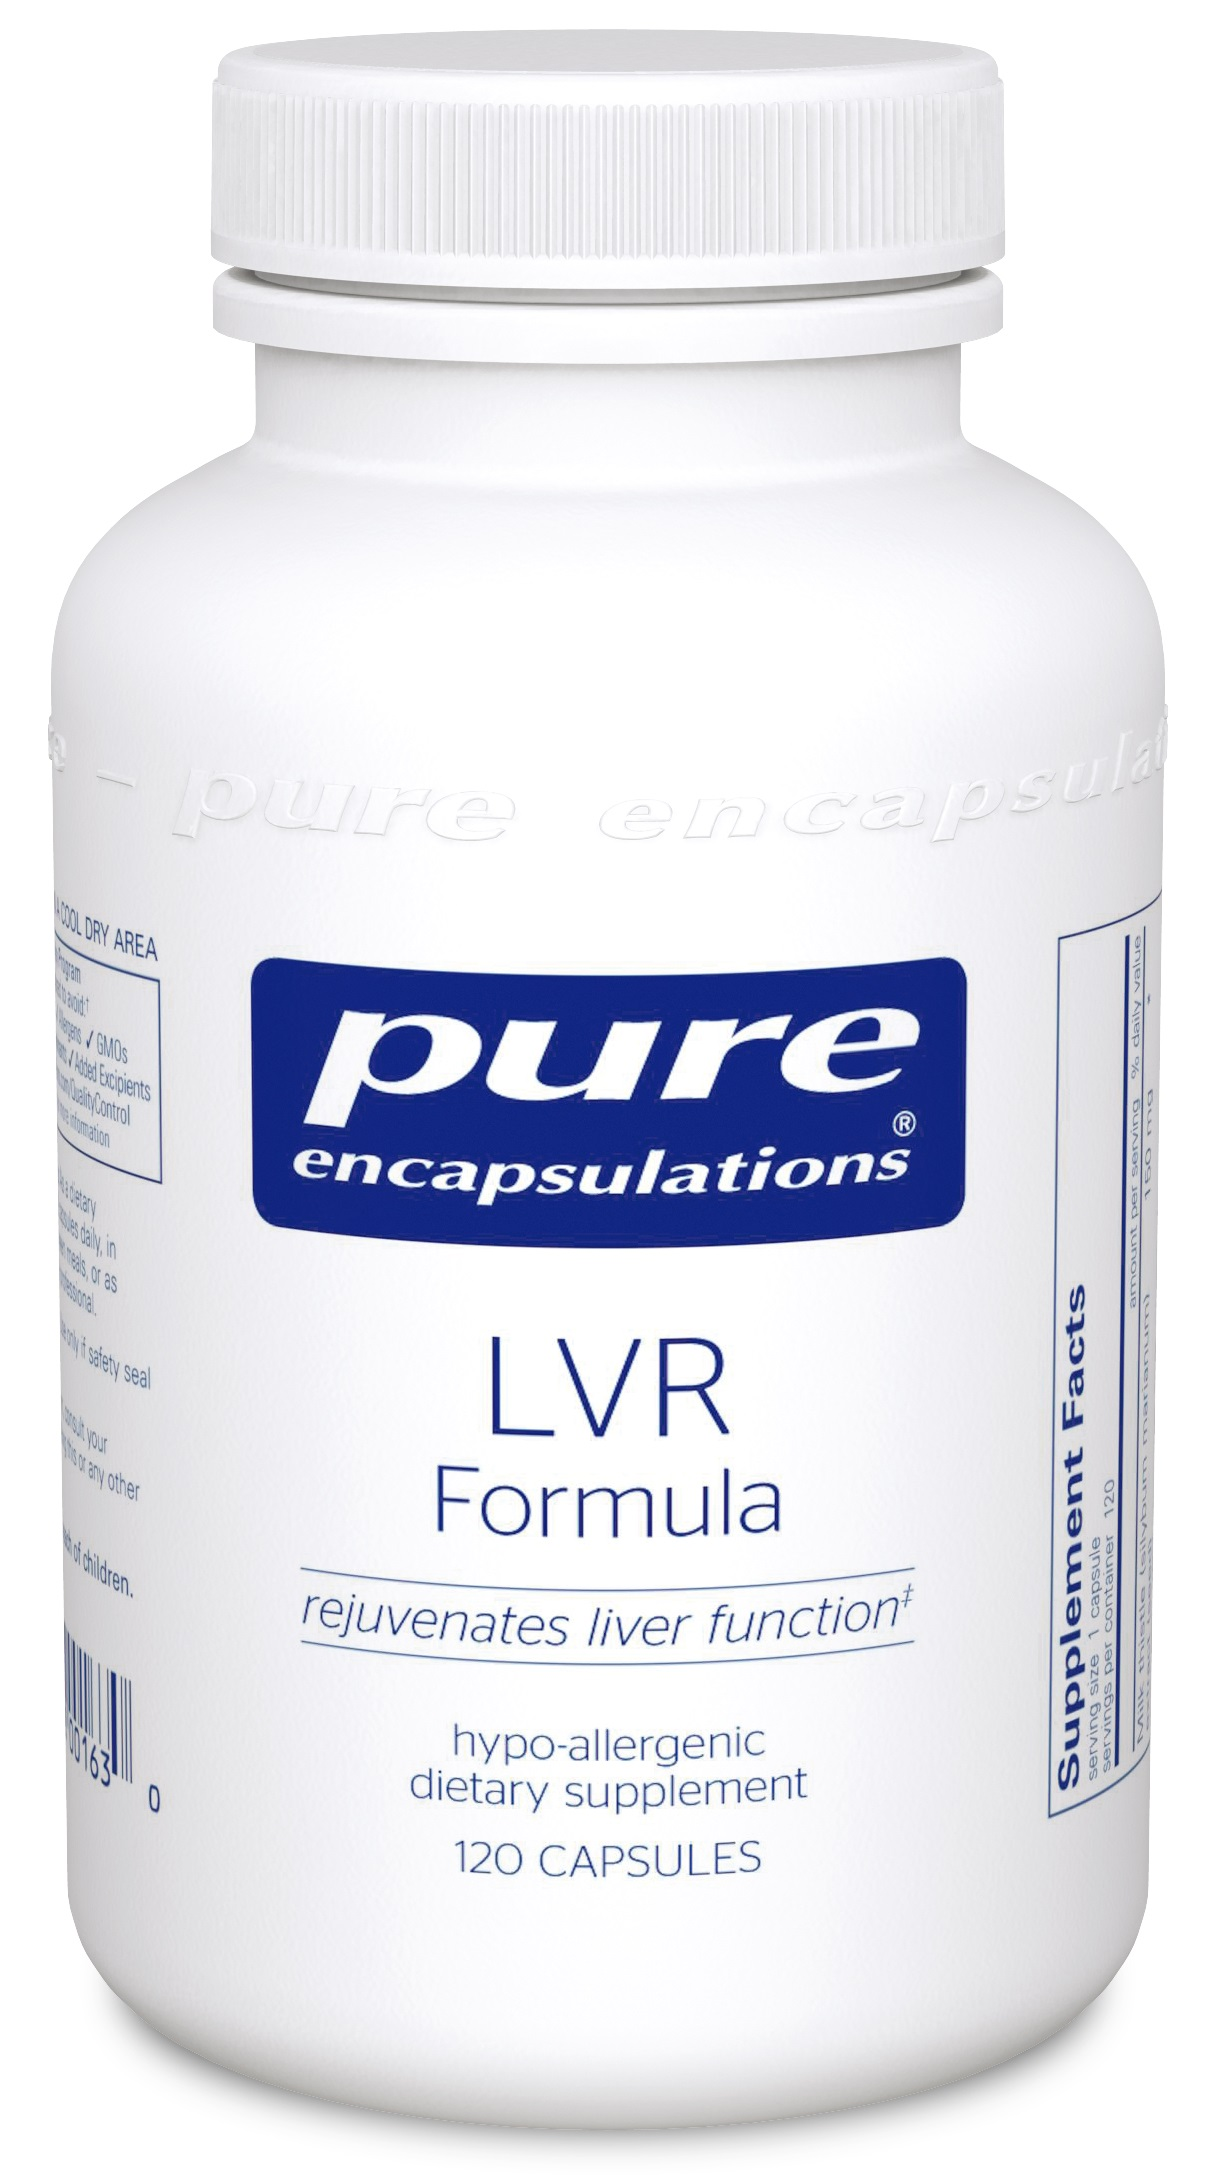 Pure Encapsulations LVR Formula